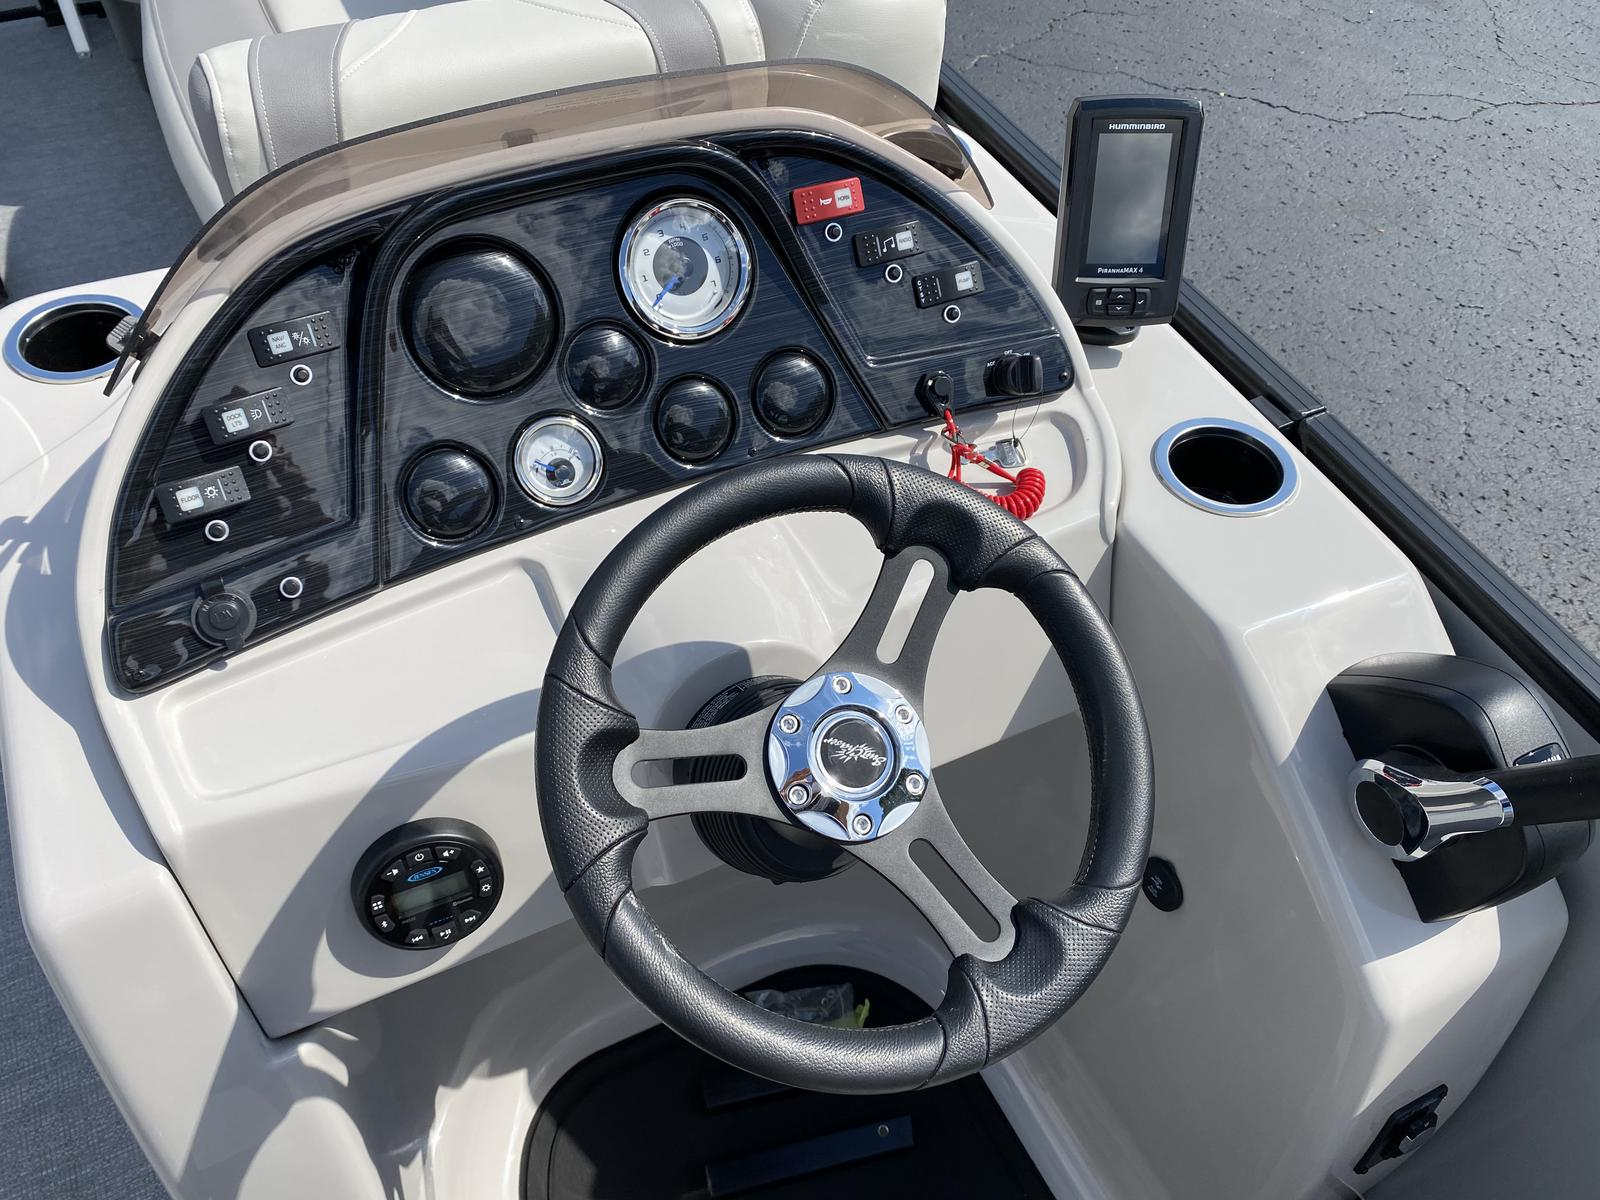 2020 SunChaser boat for sale, model of the boat is Geneva Cruise 22 SB & Image # 3 of 12